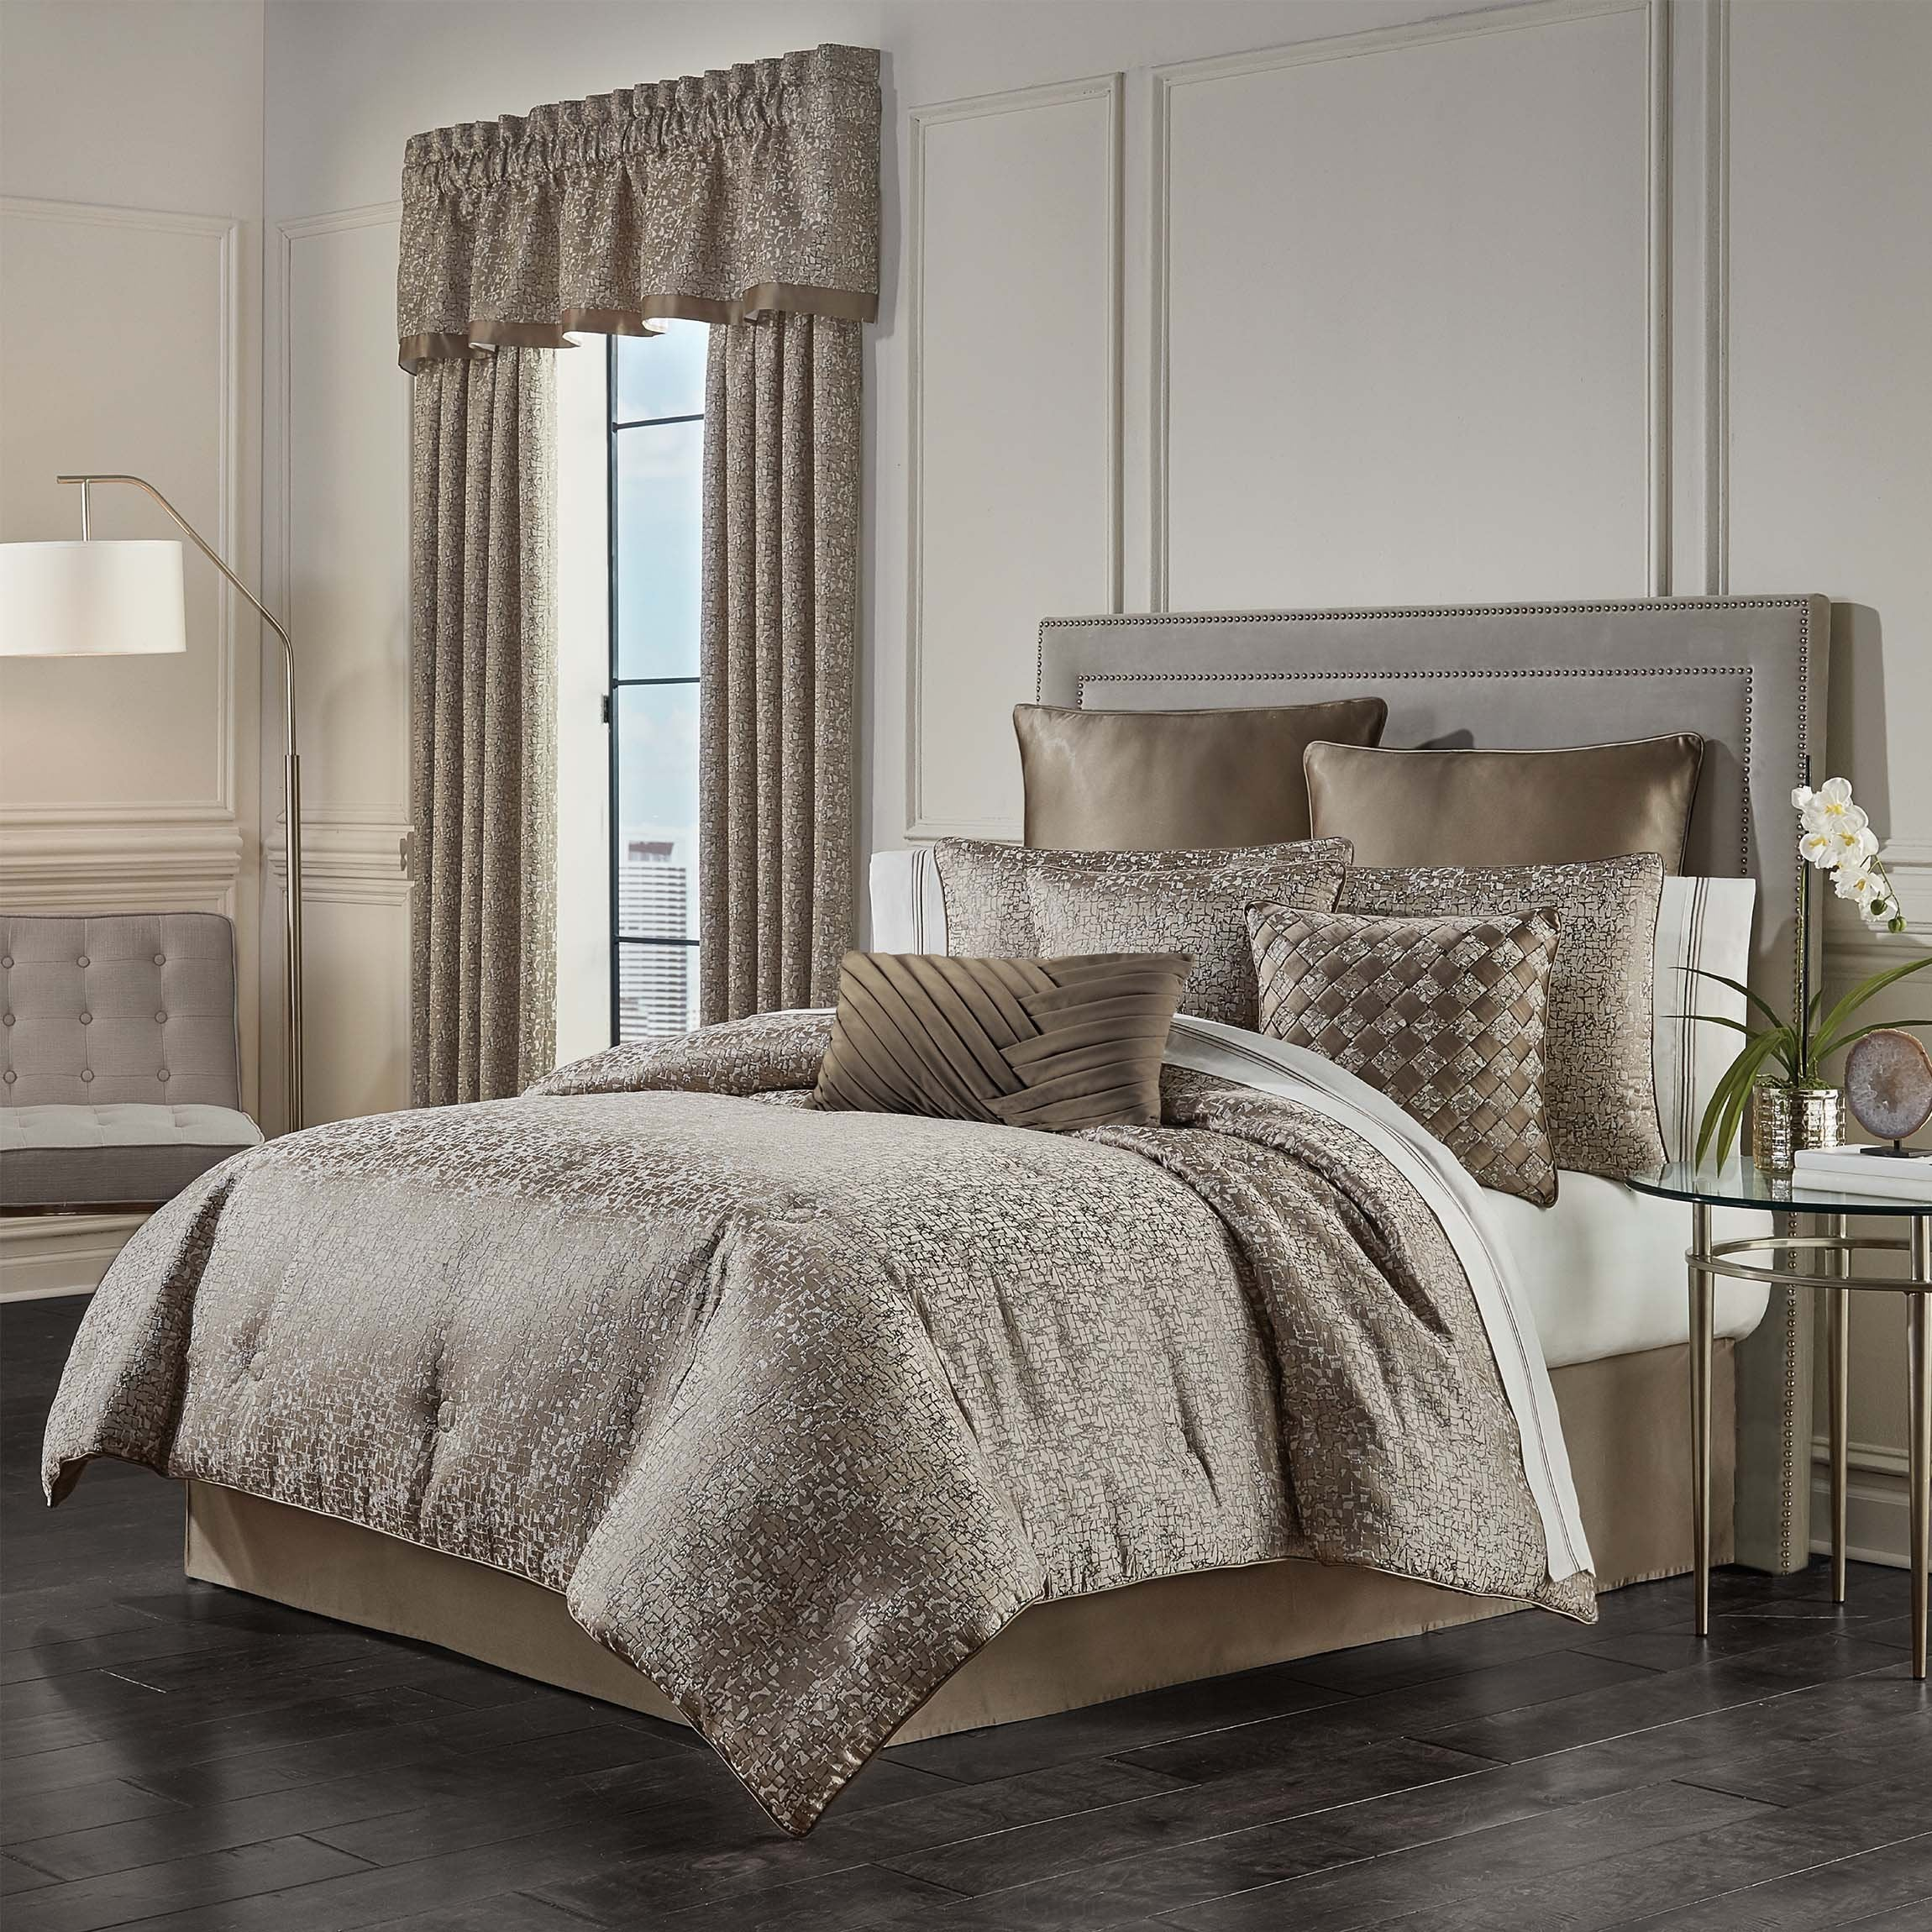 Cracked Taupe Ice 4-Piece Comforter Set Comforter Sets By J. Queen New York